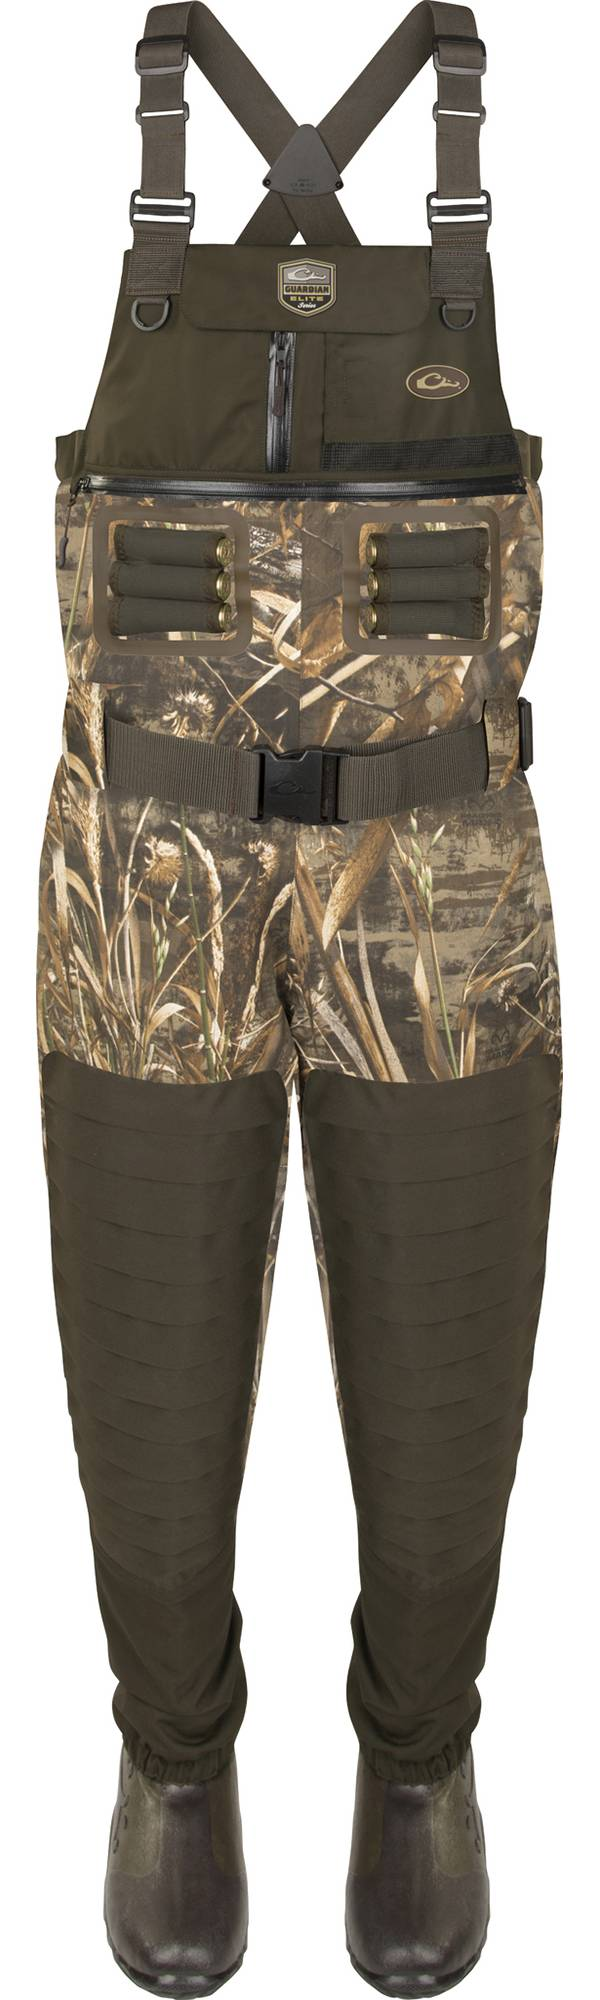 Drake Waterfowl Guardian Elite Waders product image